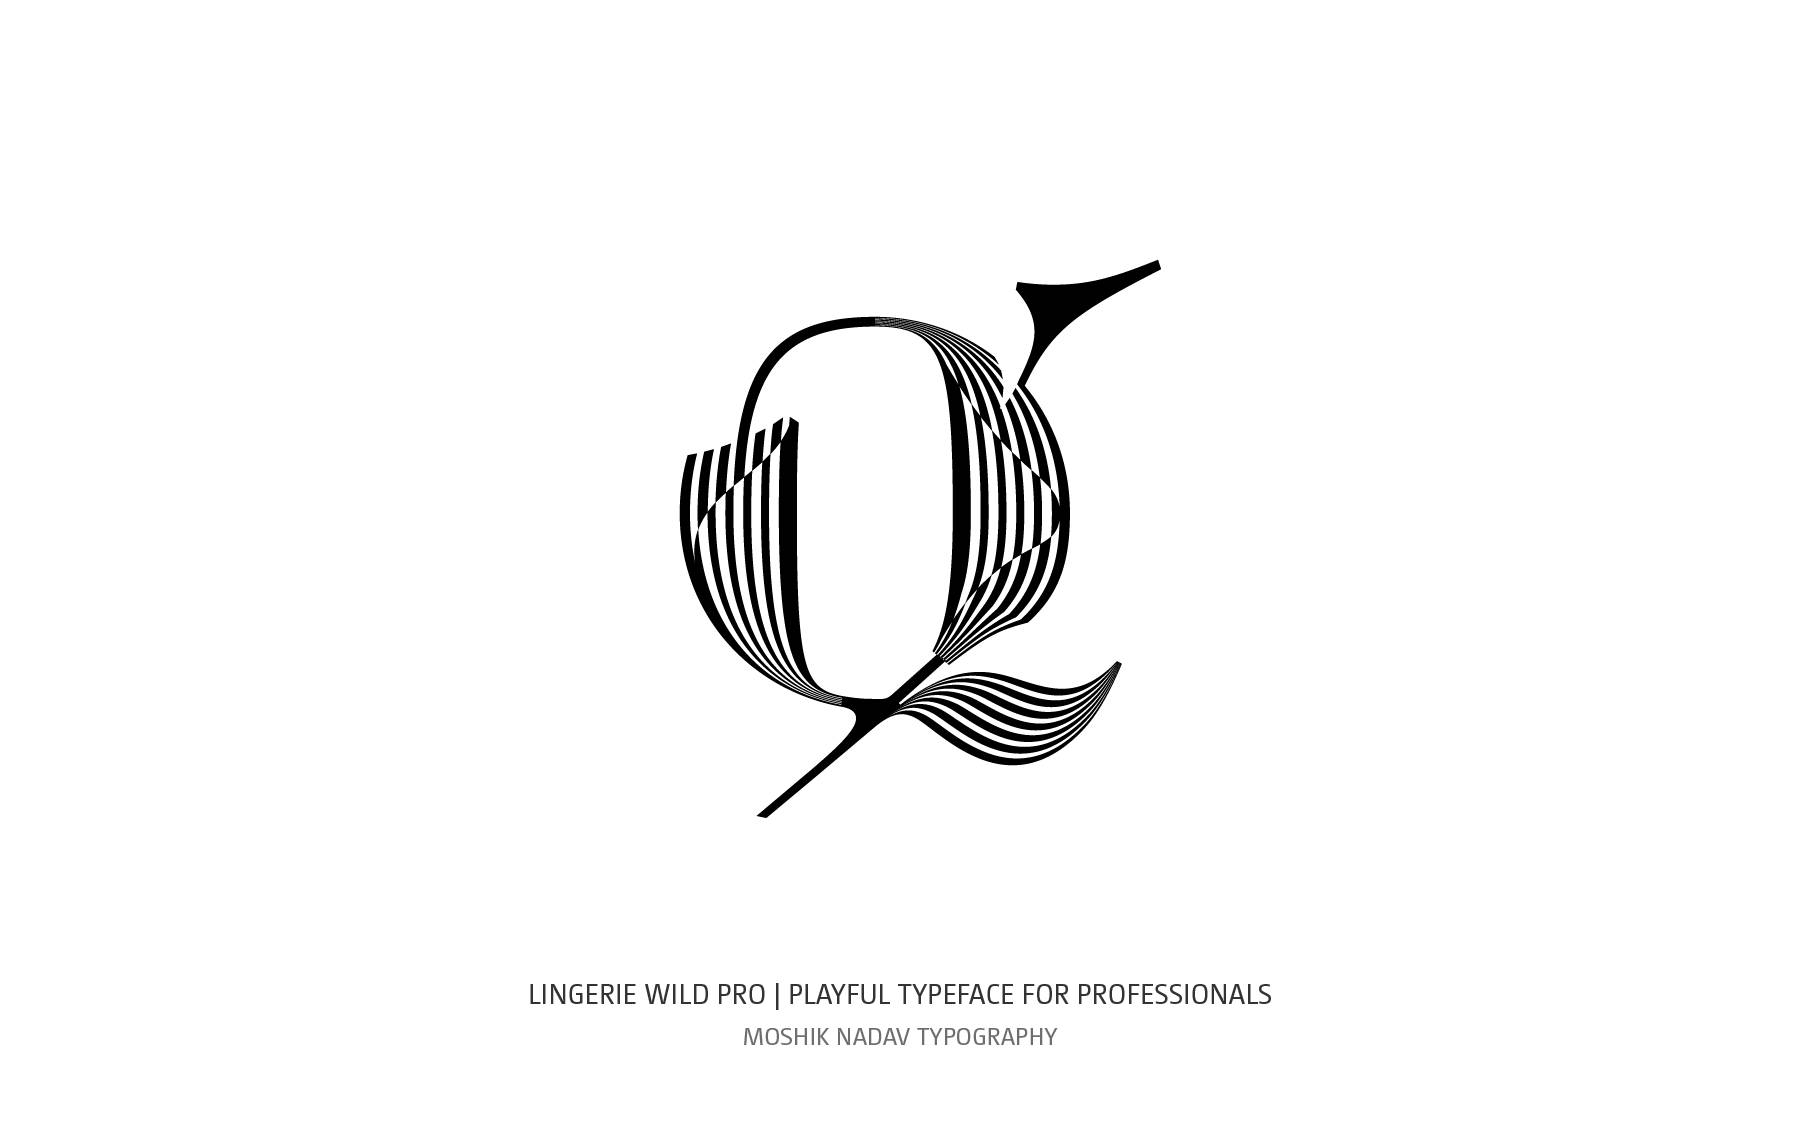 Cool lowercase q designed for fashion and luxury brands by Moshik Nadav Typography